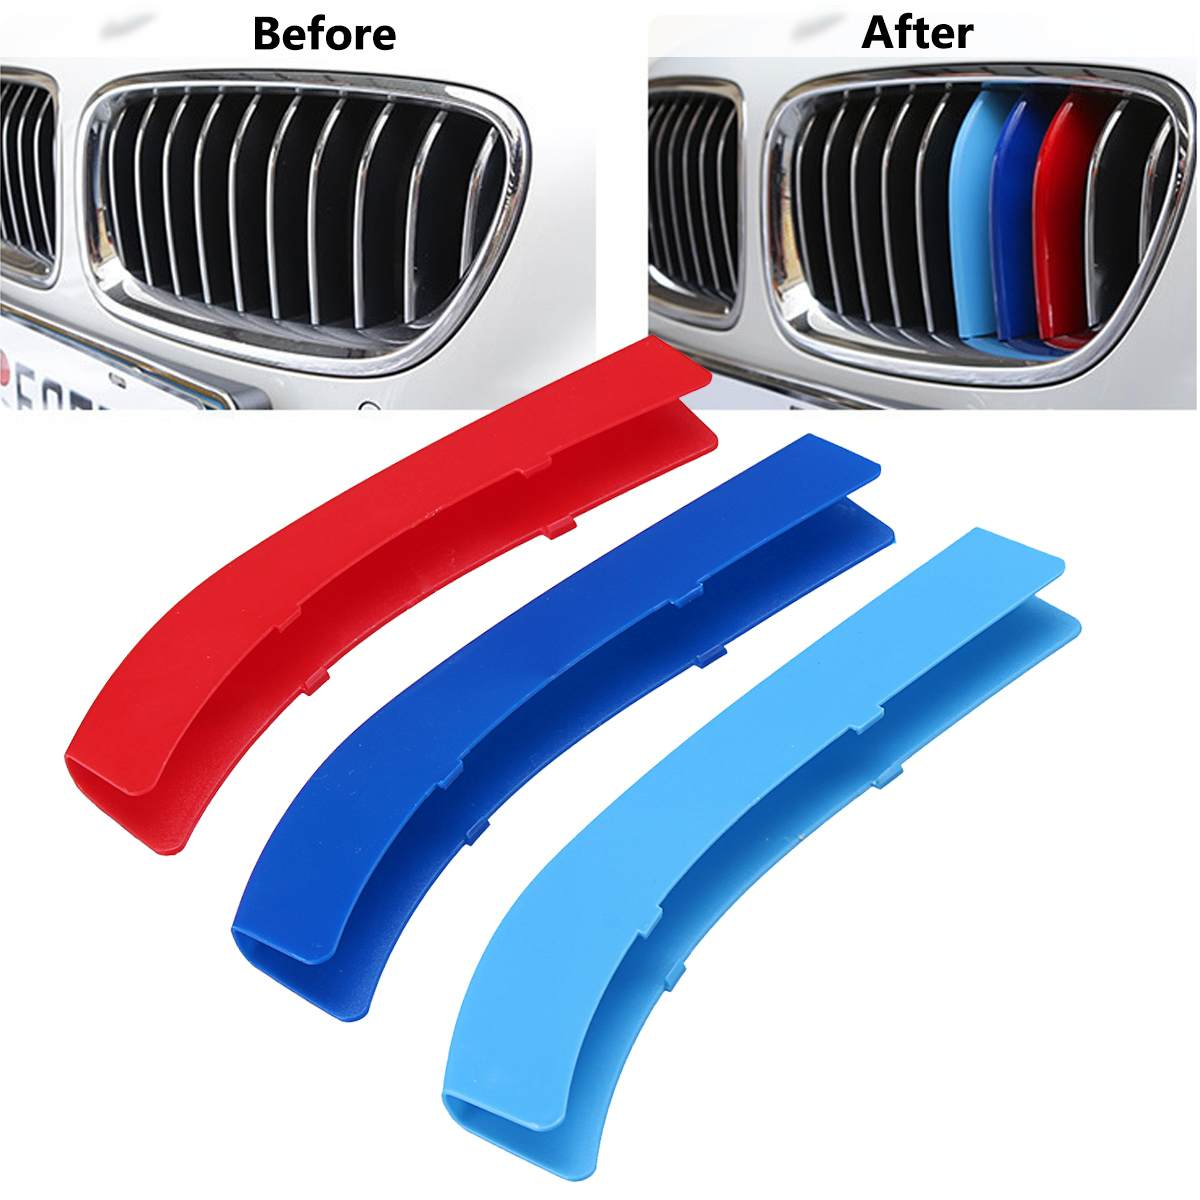 3pcs <font><b>Car</b></font> Grille Sticker Strip Cover Trim For <font><b>BMW</b></font> 1 3 5 Series F30 F31 X5 X6 E90 E91 F10 F11 F18 E60 E61 E70 E84 F48 F20 F21 image